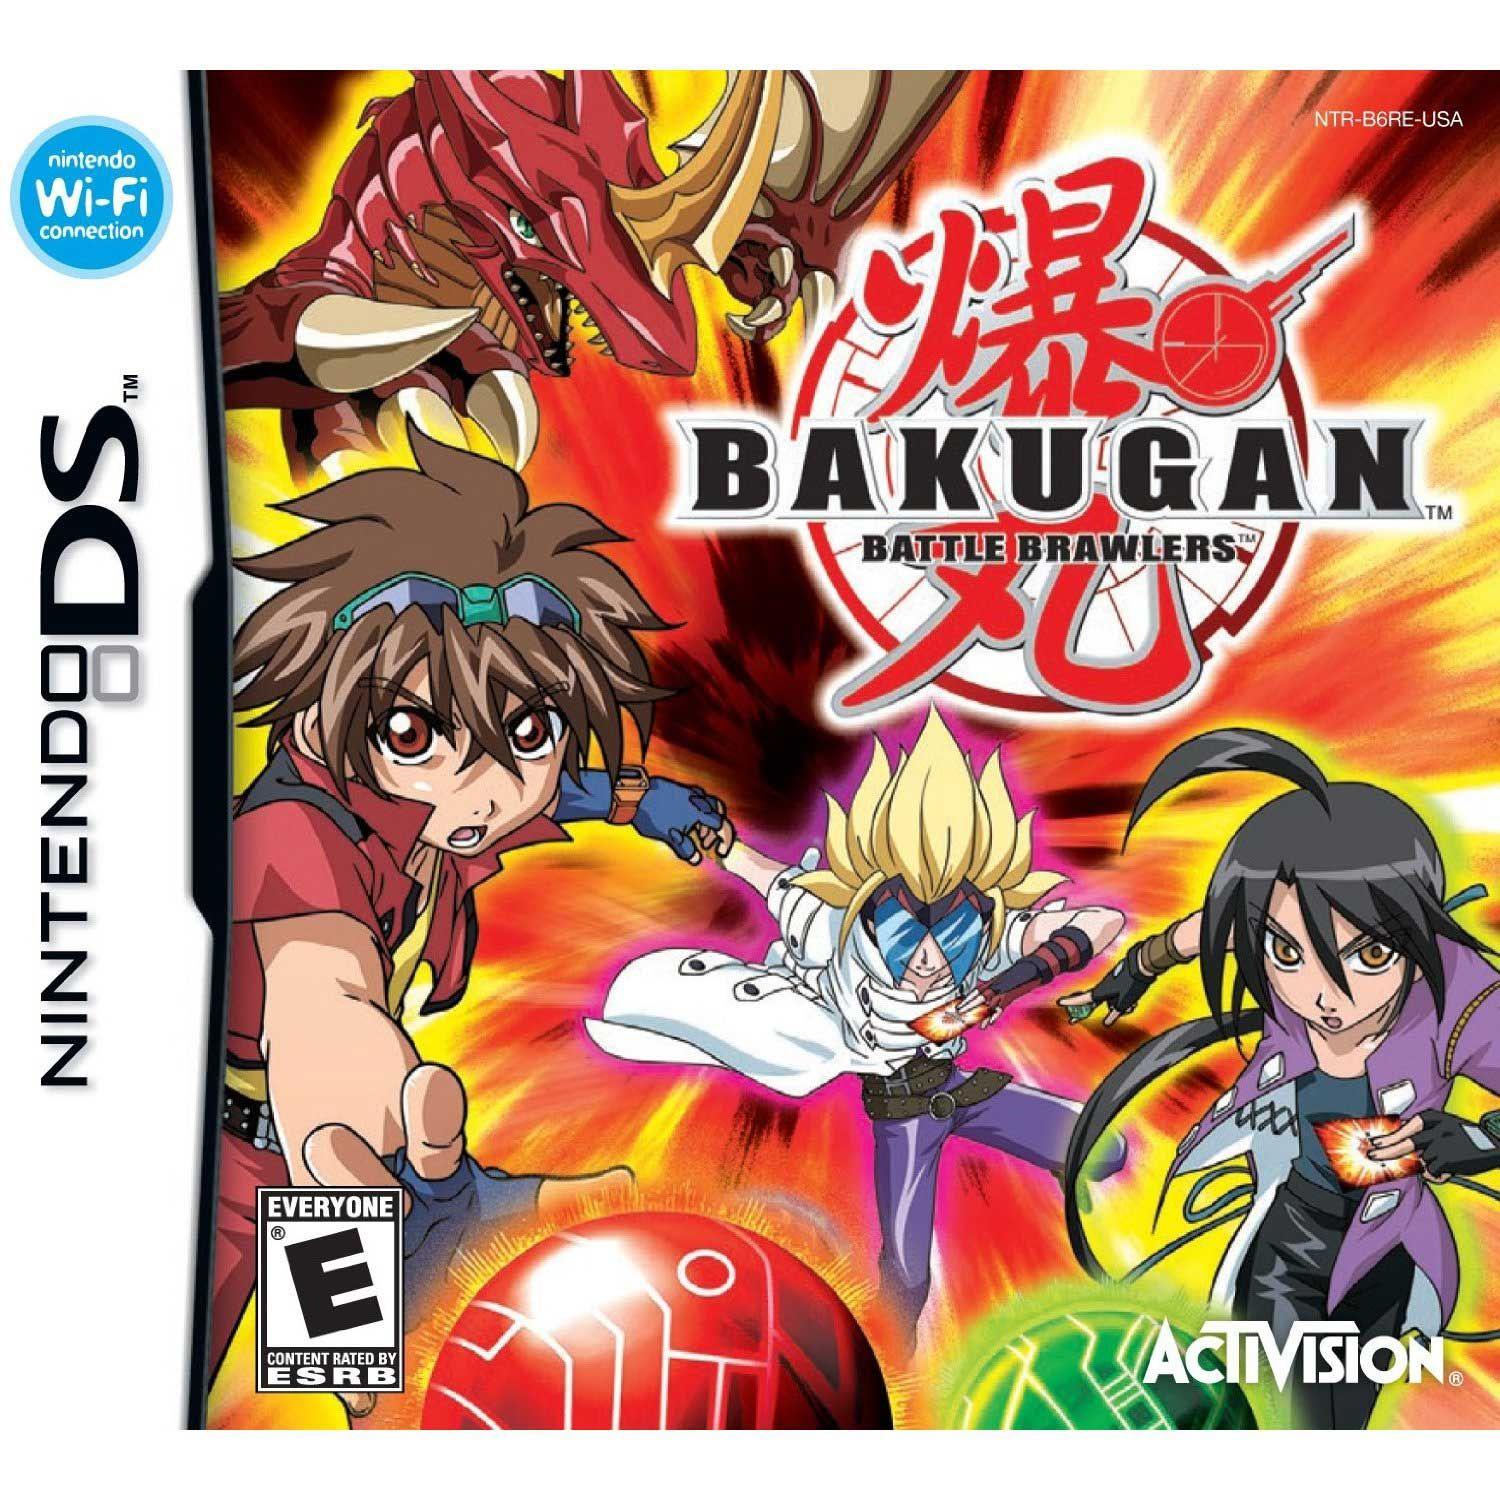 Bakugan Ds Game Bakugan Battle Brawlers Nintendo Ds Ds Games